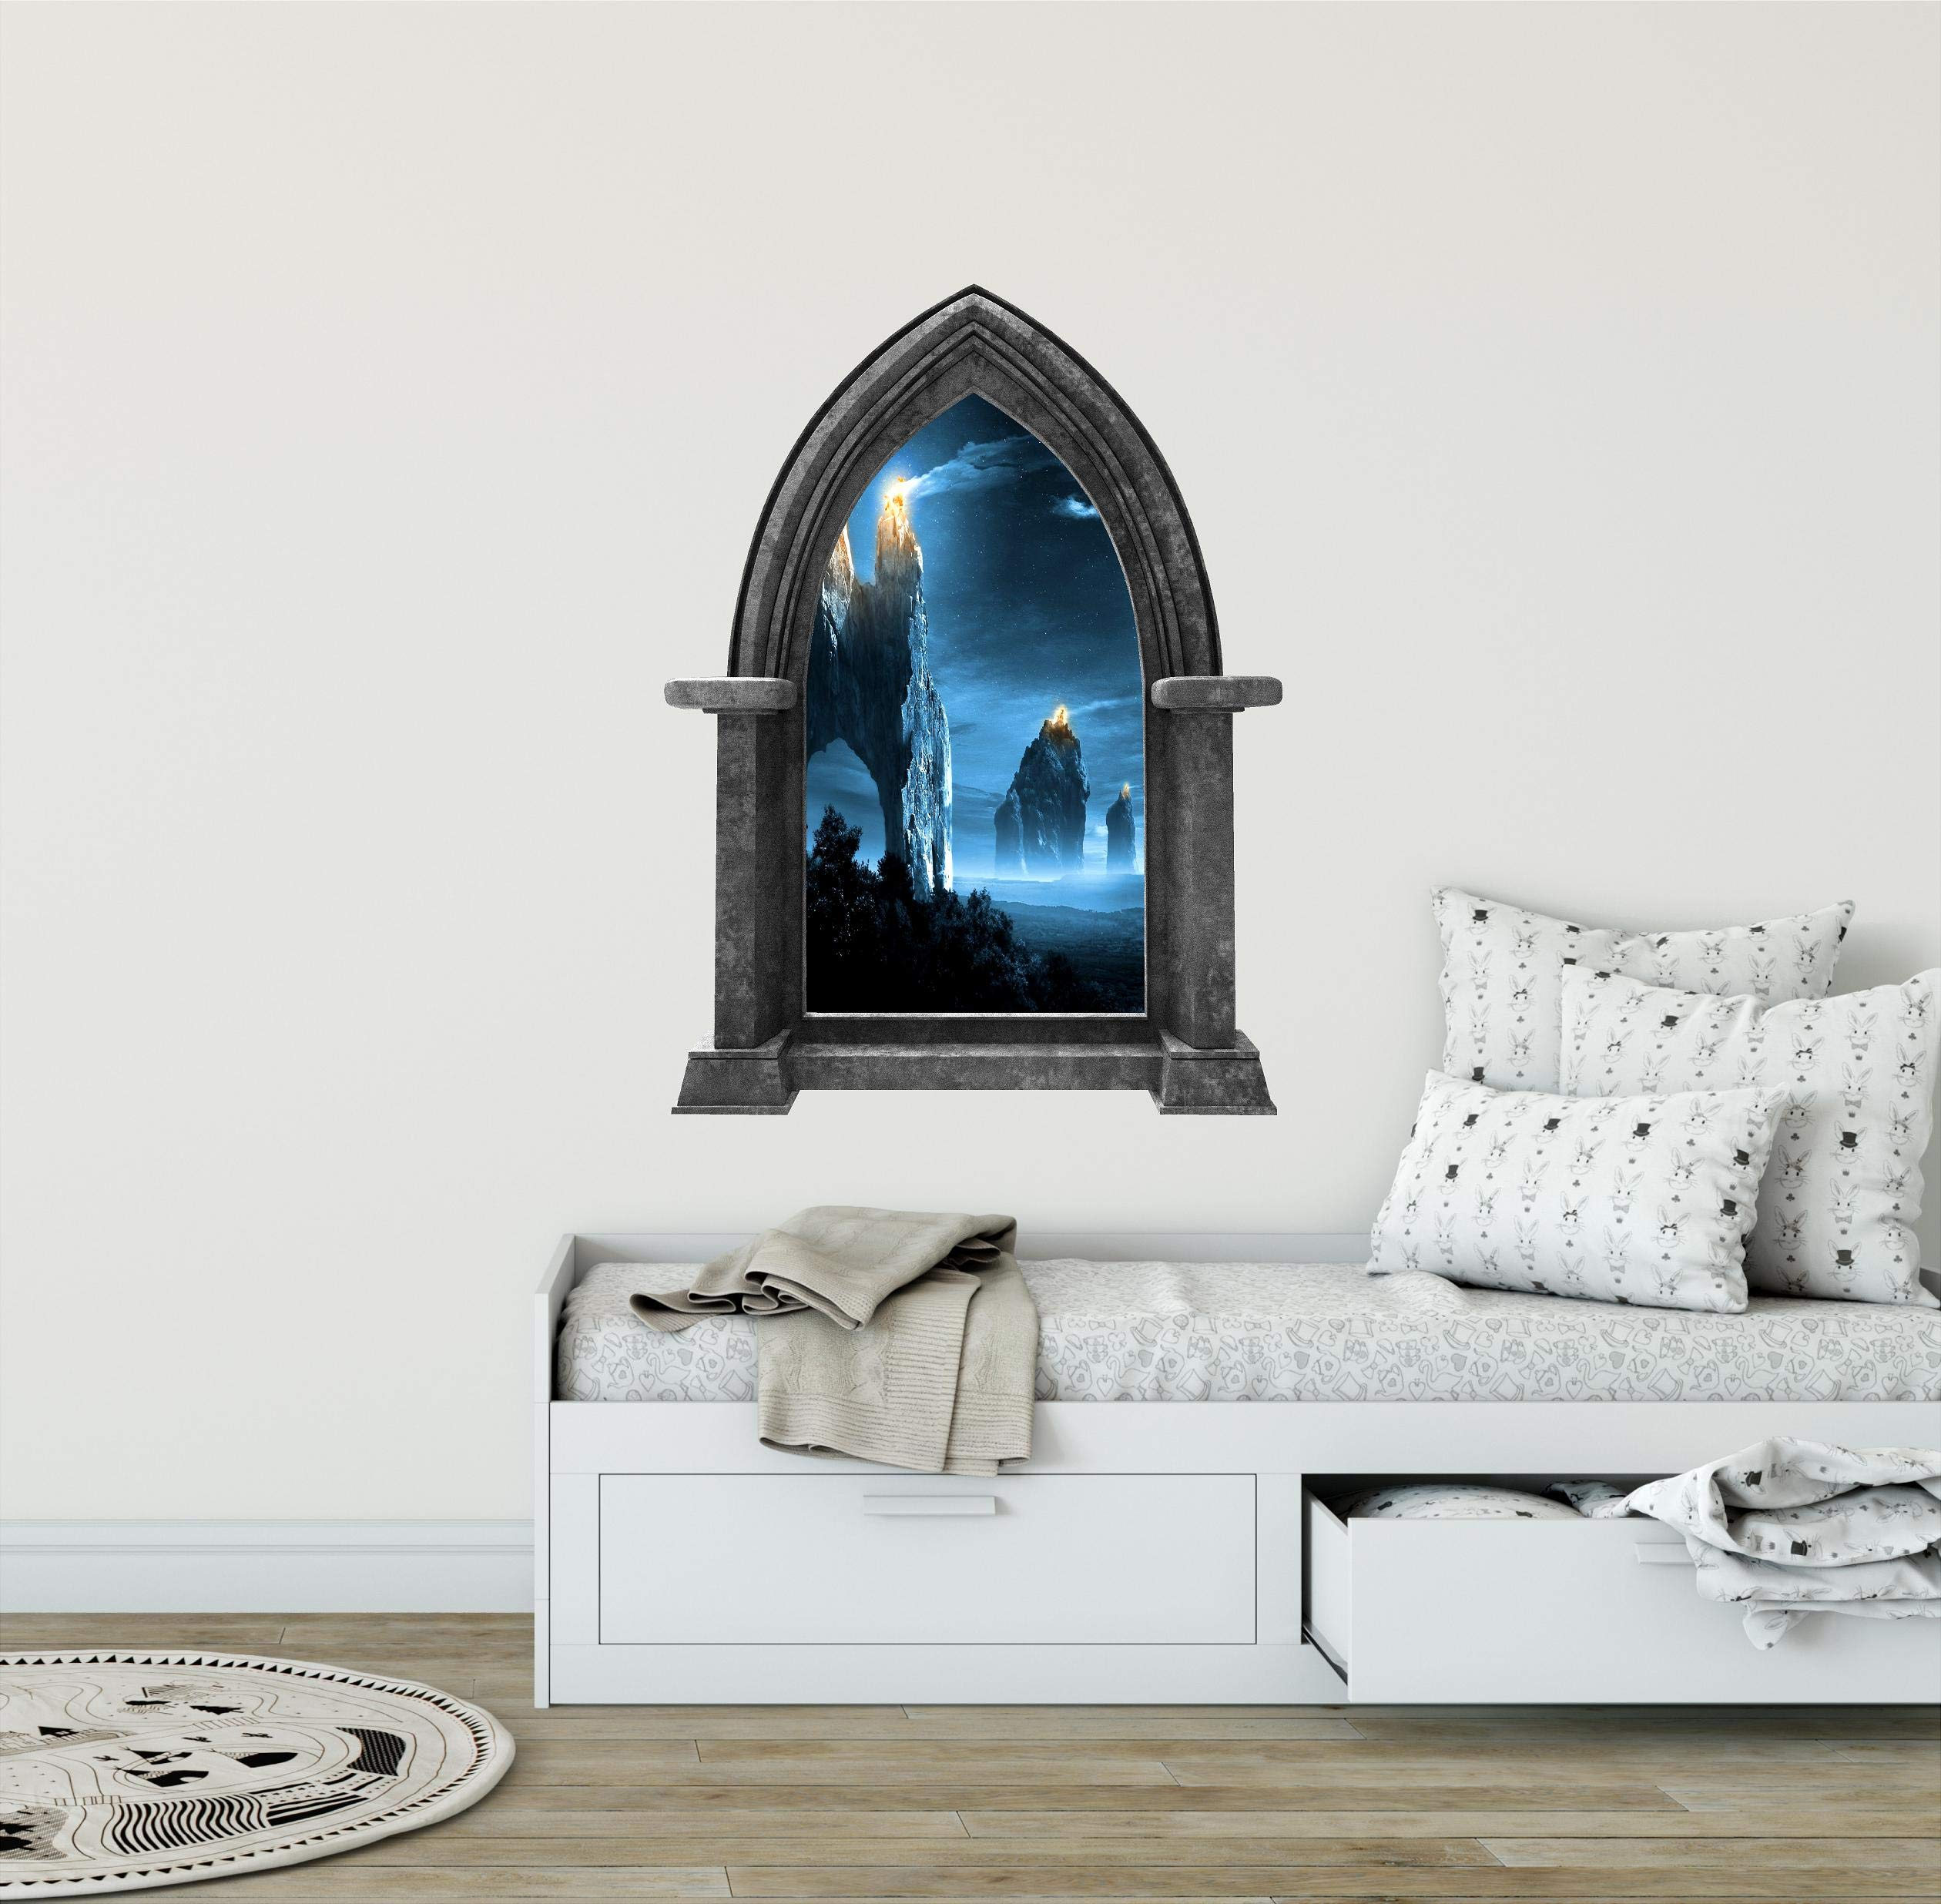 24'' Castle Scape Beacons in the Night GRANITE 3D Stone Window Wall Decal Sticker Mural Mythical Medieval Knights Armor Fantasy Fictional Fairy Tale Kids Playroom Decor